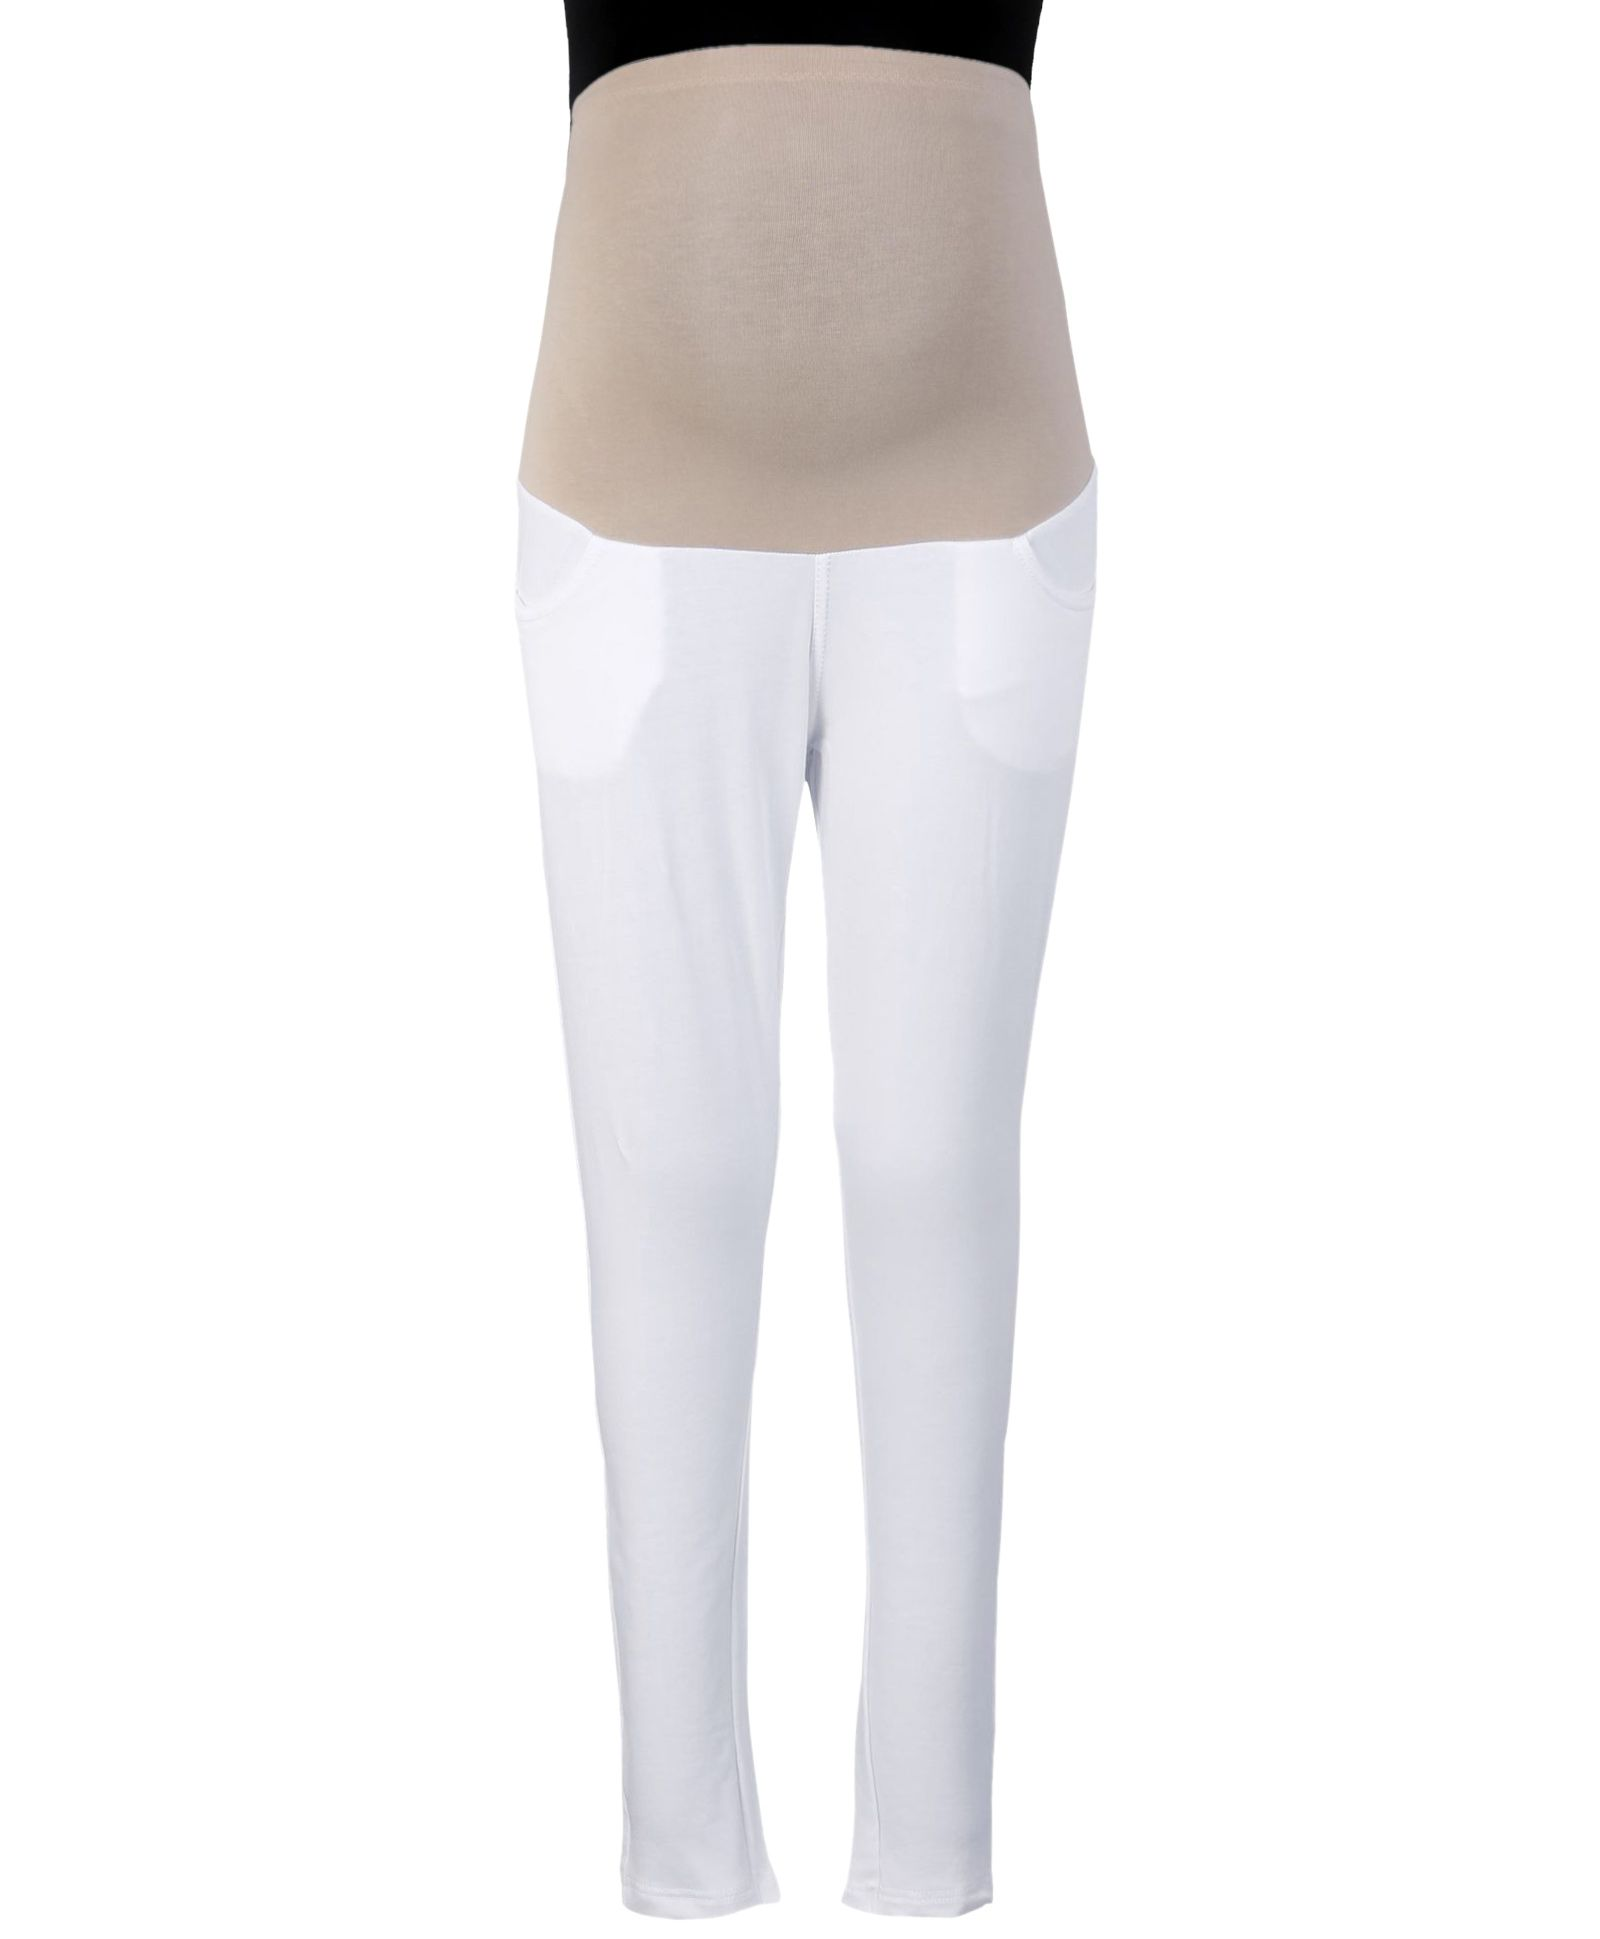 c338369546a324 Kriti Ethnic Maternity Jeggings White Online in India, Buy at Best Price ...